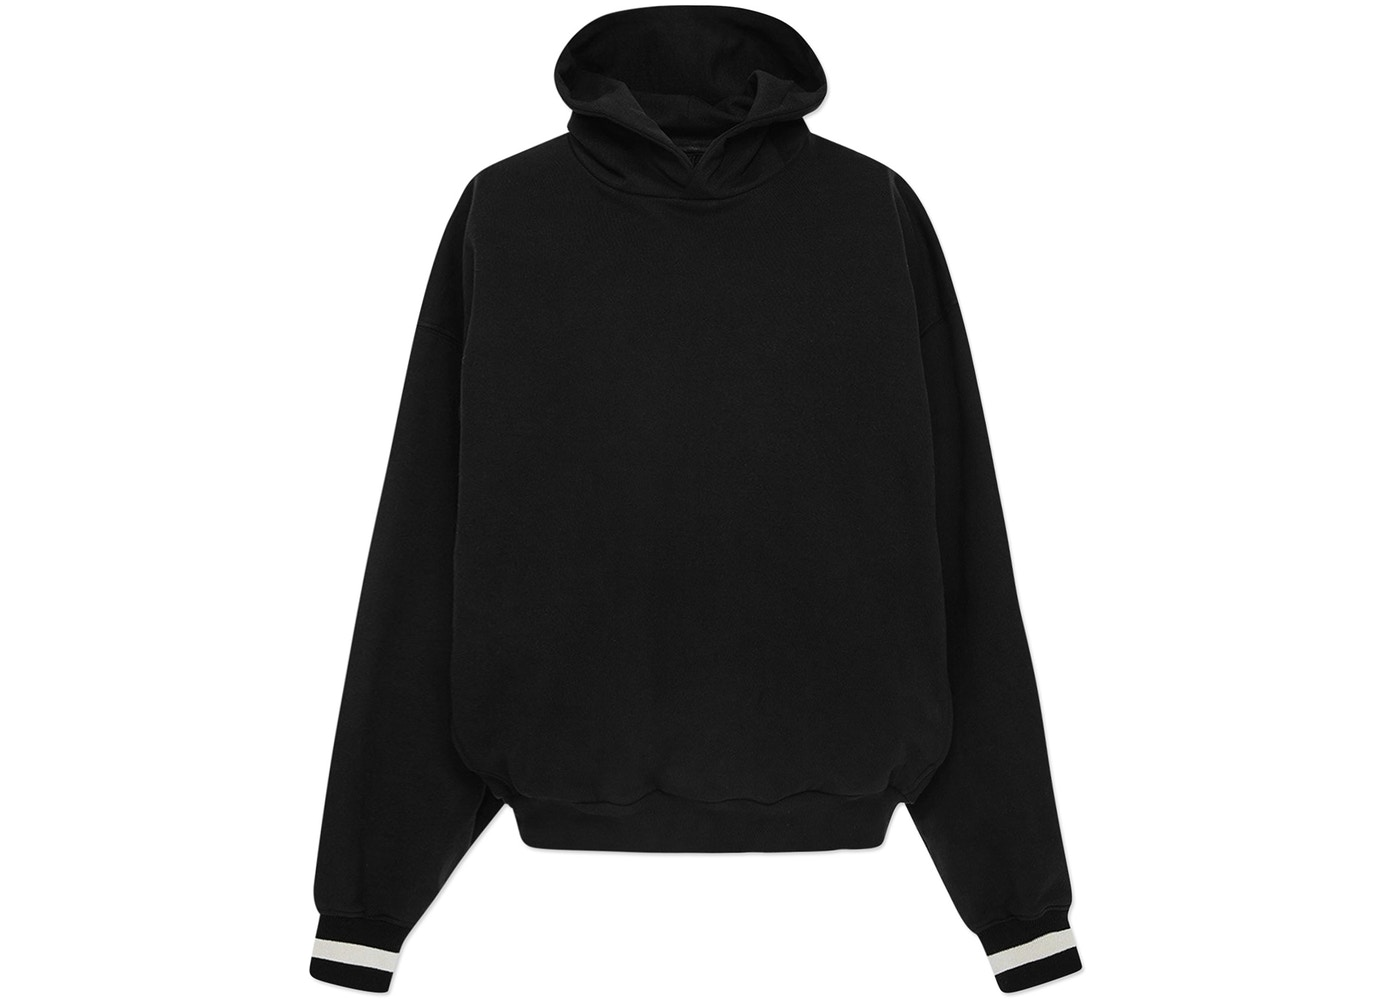 75e0aac7c420 FEAR OF GOD Heavy Terry Everyday Hoodie Black - Fifth Collection